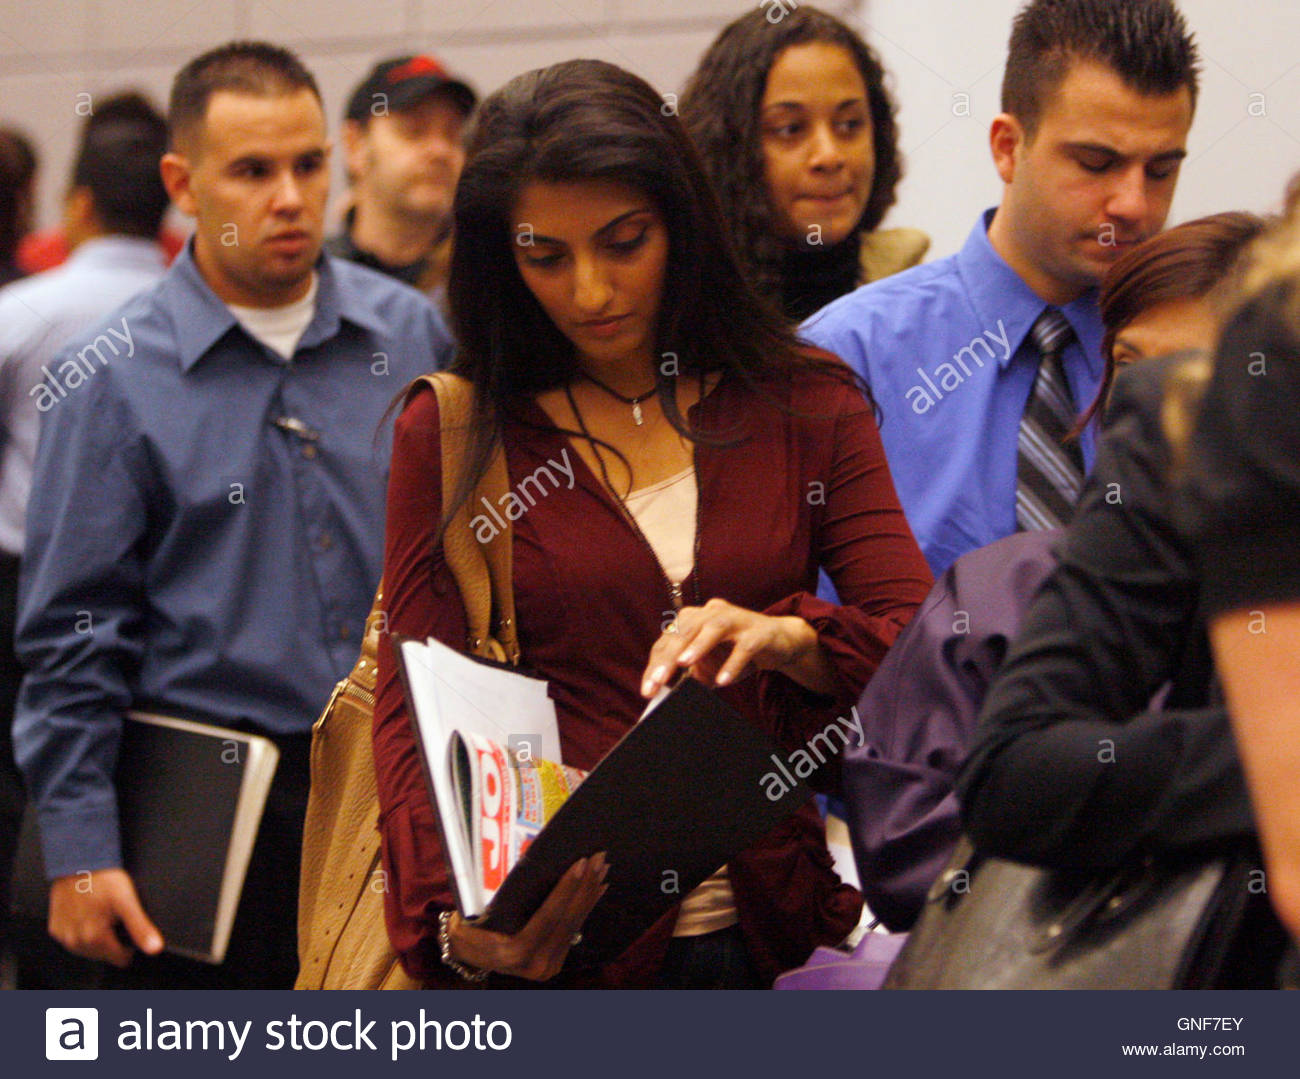 yamini patel nd l waits in line to talk to job recruiters stock photo yamini patel 2nd l 37 waits in line to talk to job recruiters at a career fair in los angeles 3 2009